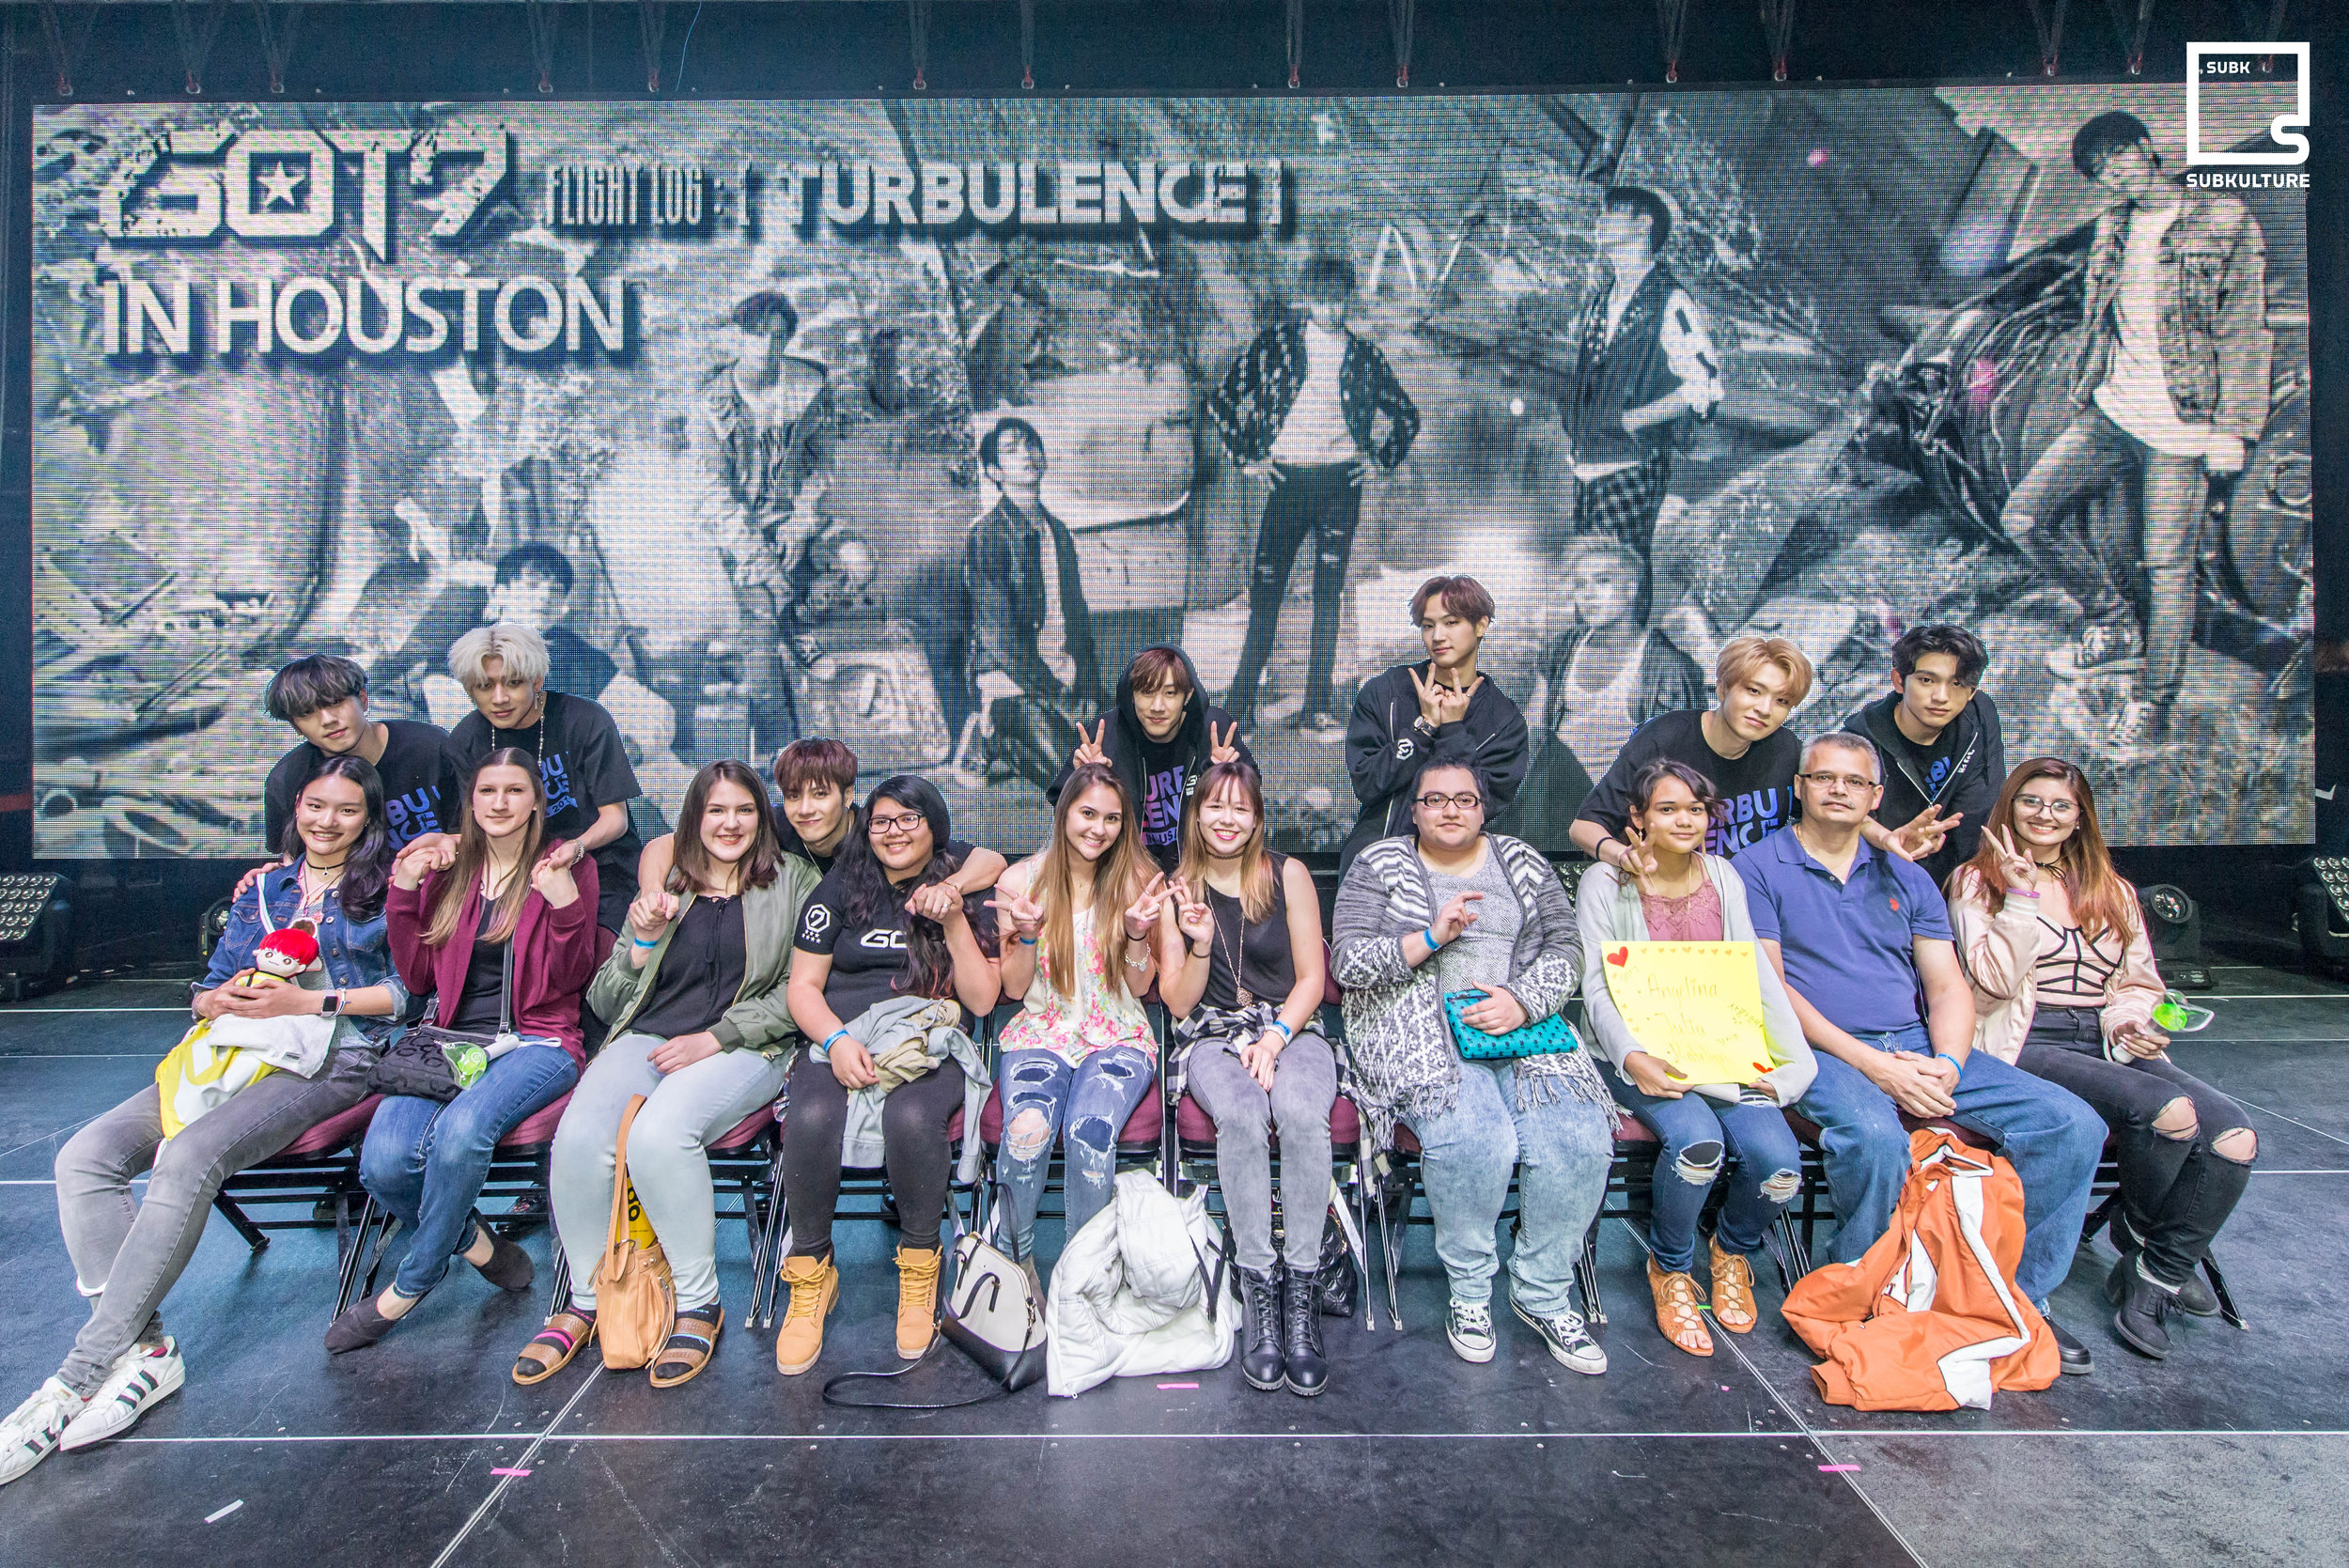 GOT7 Fan Photo Houston 2017 SubKulture Entertainment-3744 copy.jpg